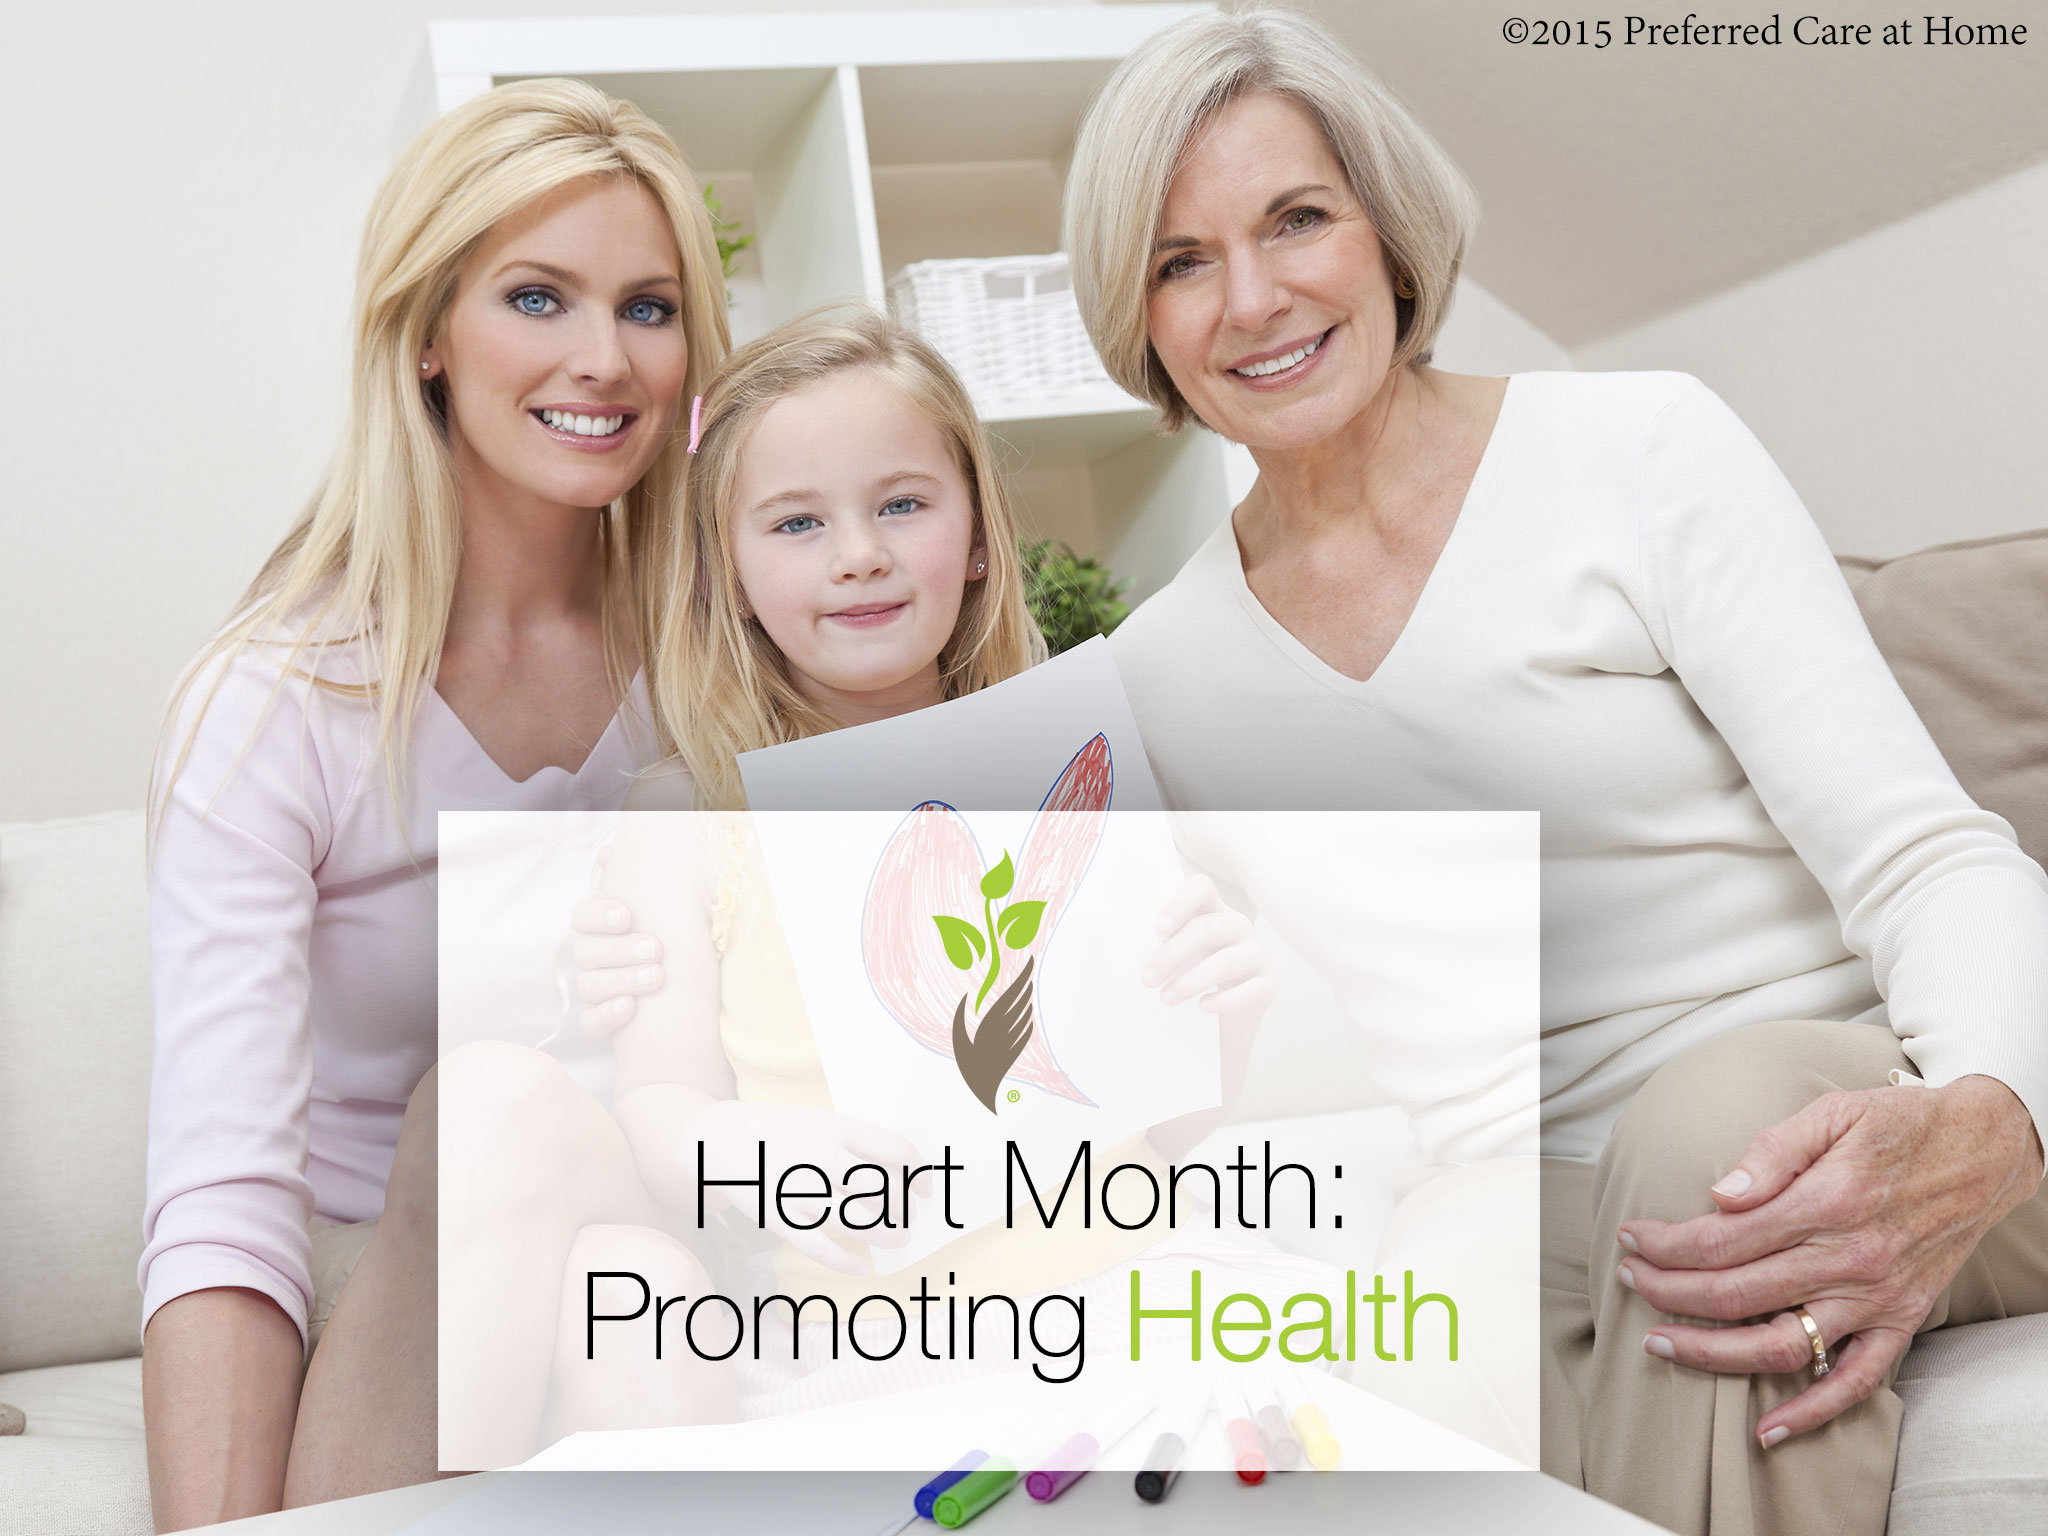 Heart Month: Promoting Health